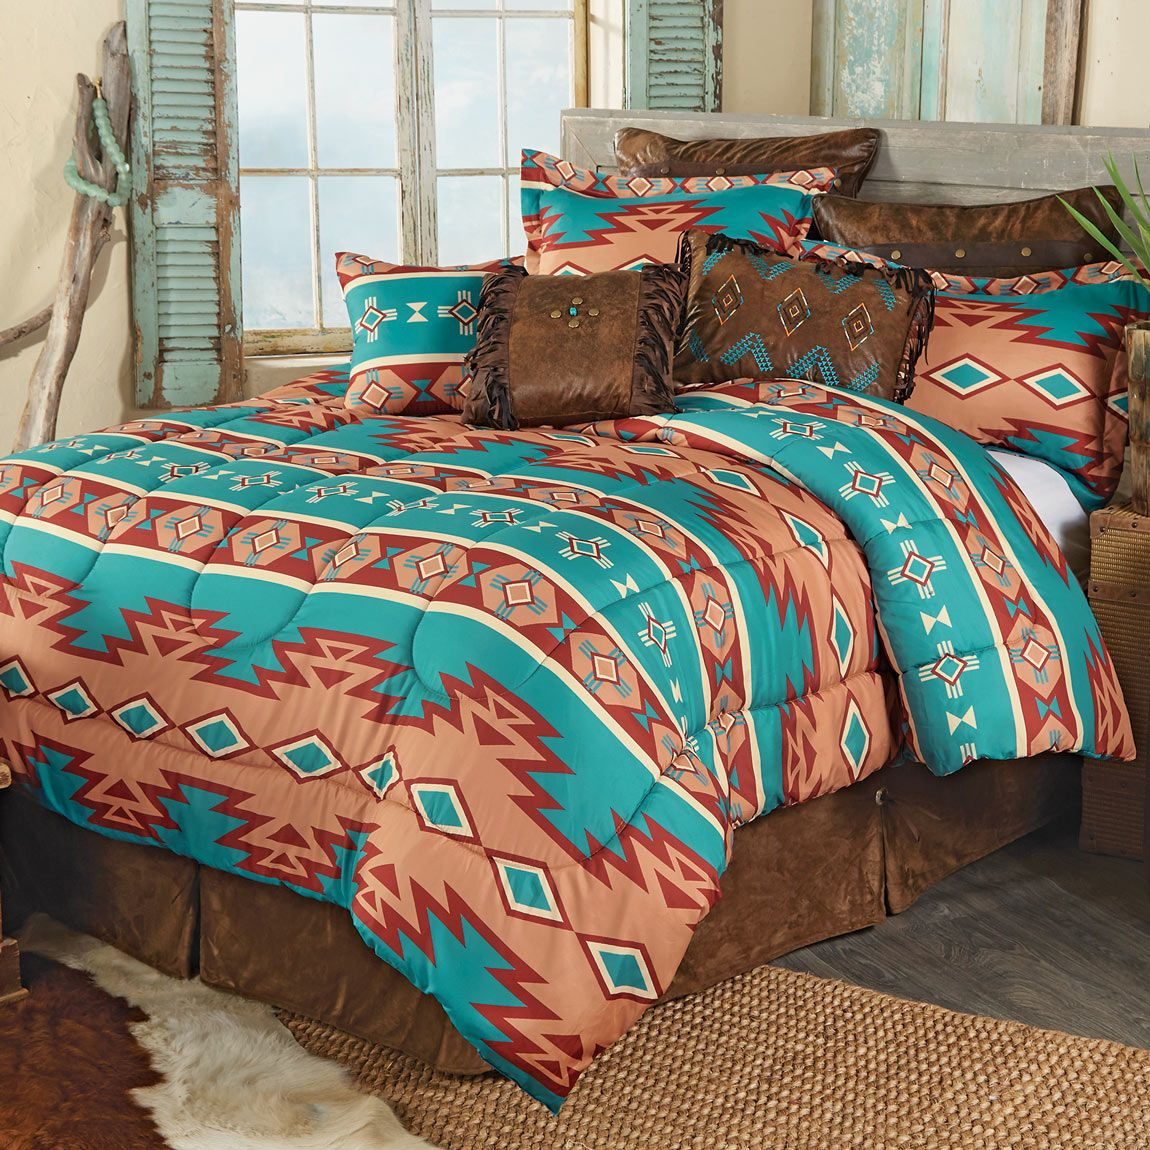 Adobe Canyon Bed Set - King - CLEARANCE